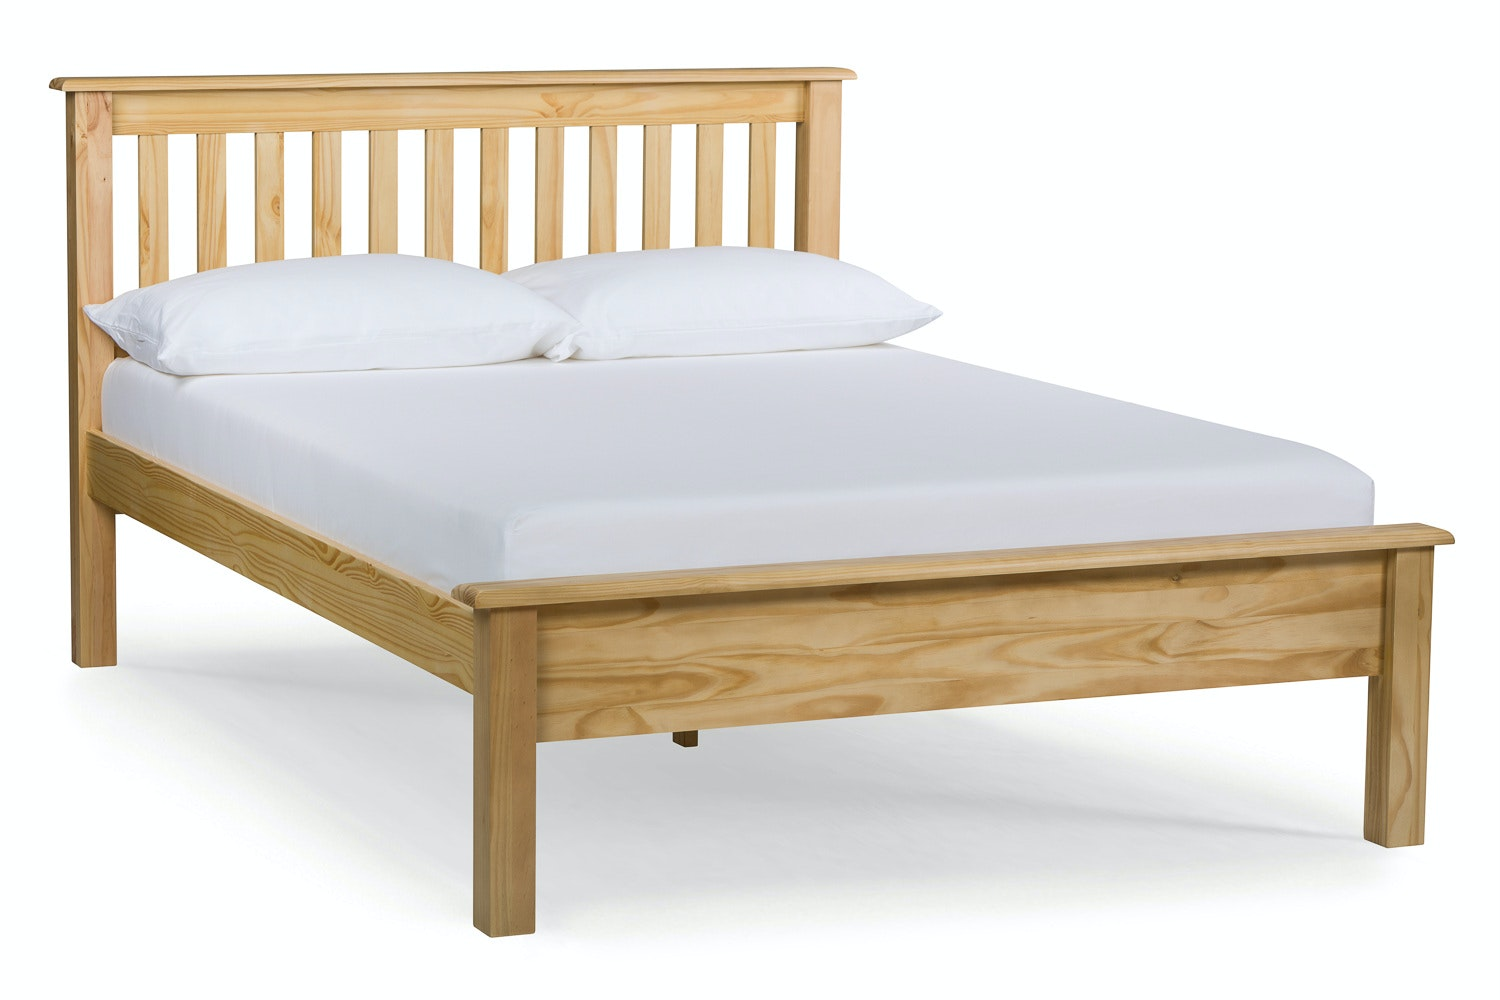 Shaker Small Double Bed Frame (4ft)